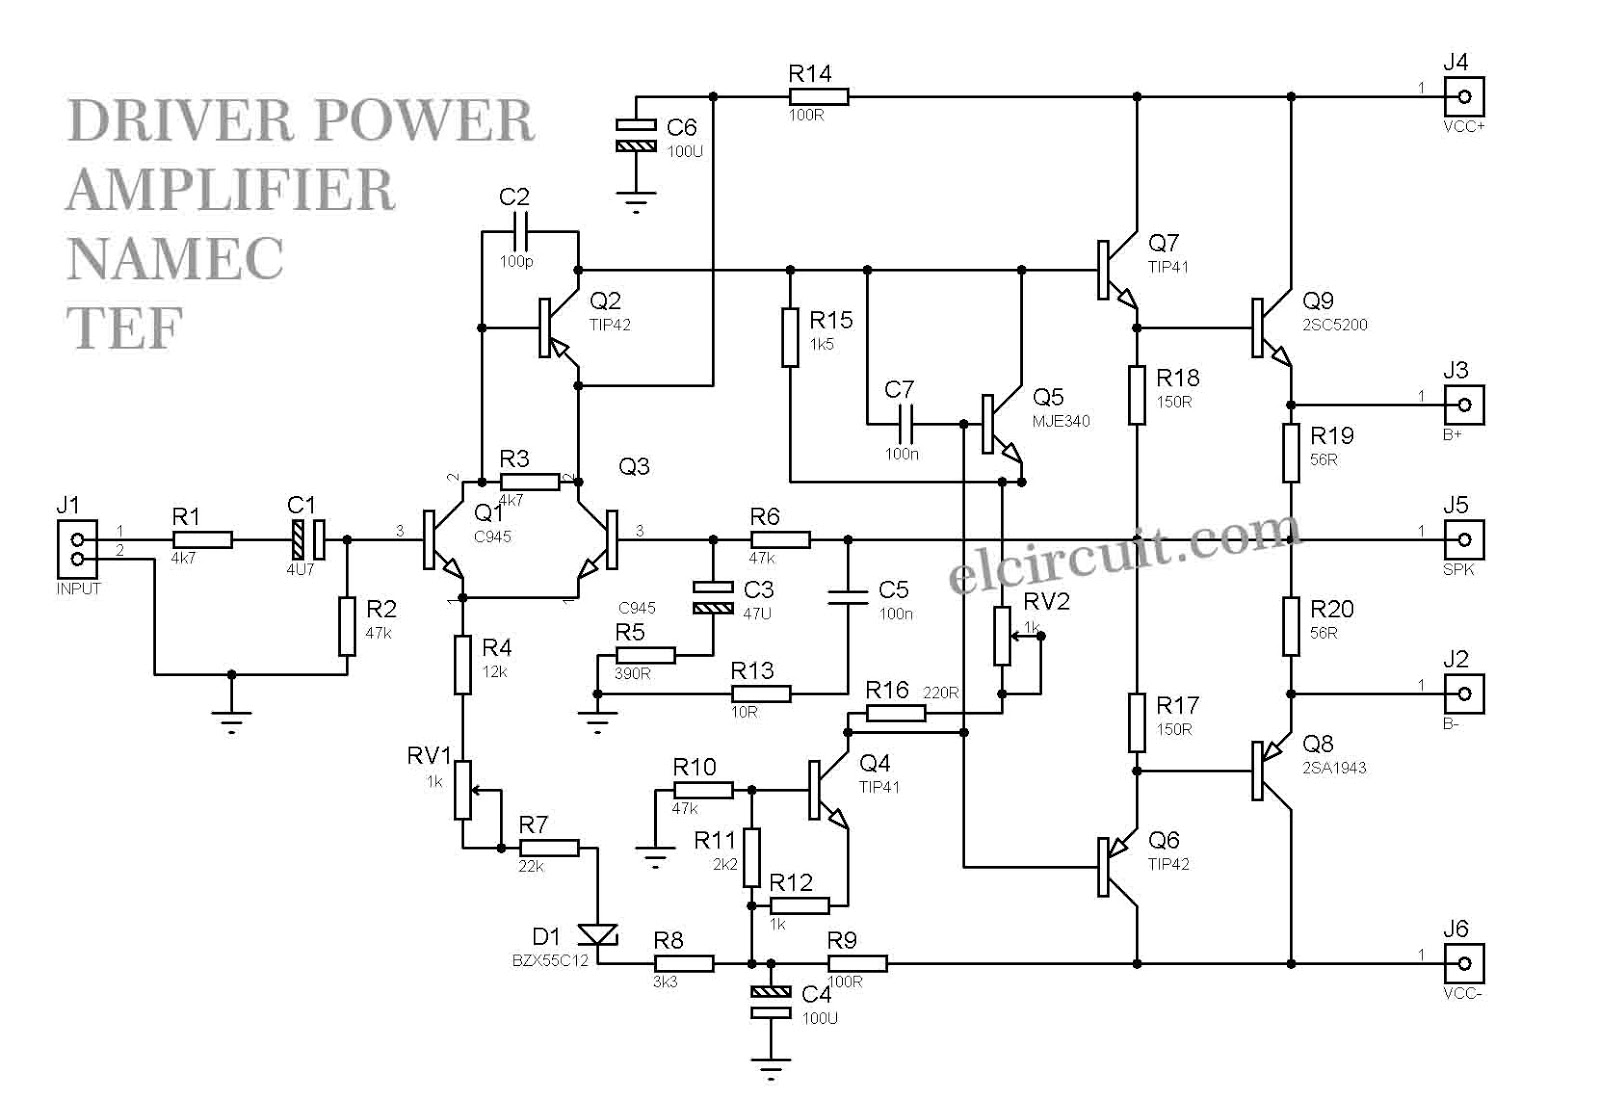 WRG-7488] 2sc5200 Amplifier Circuit Diagrams